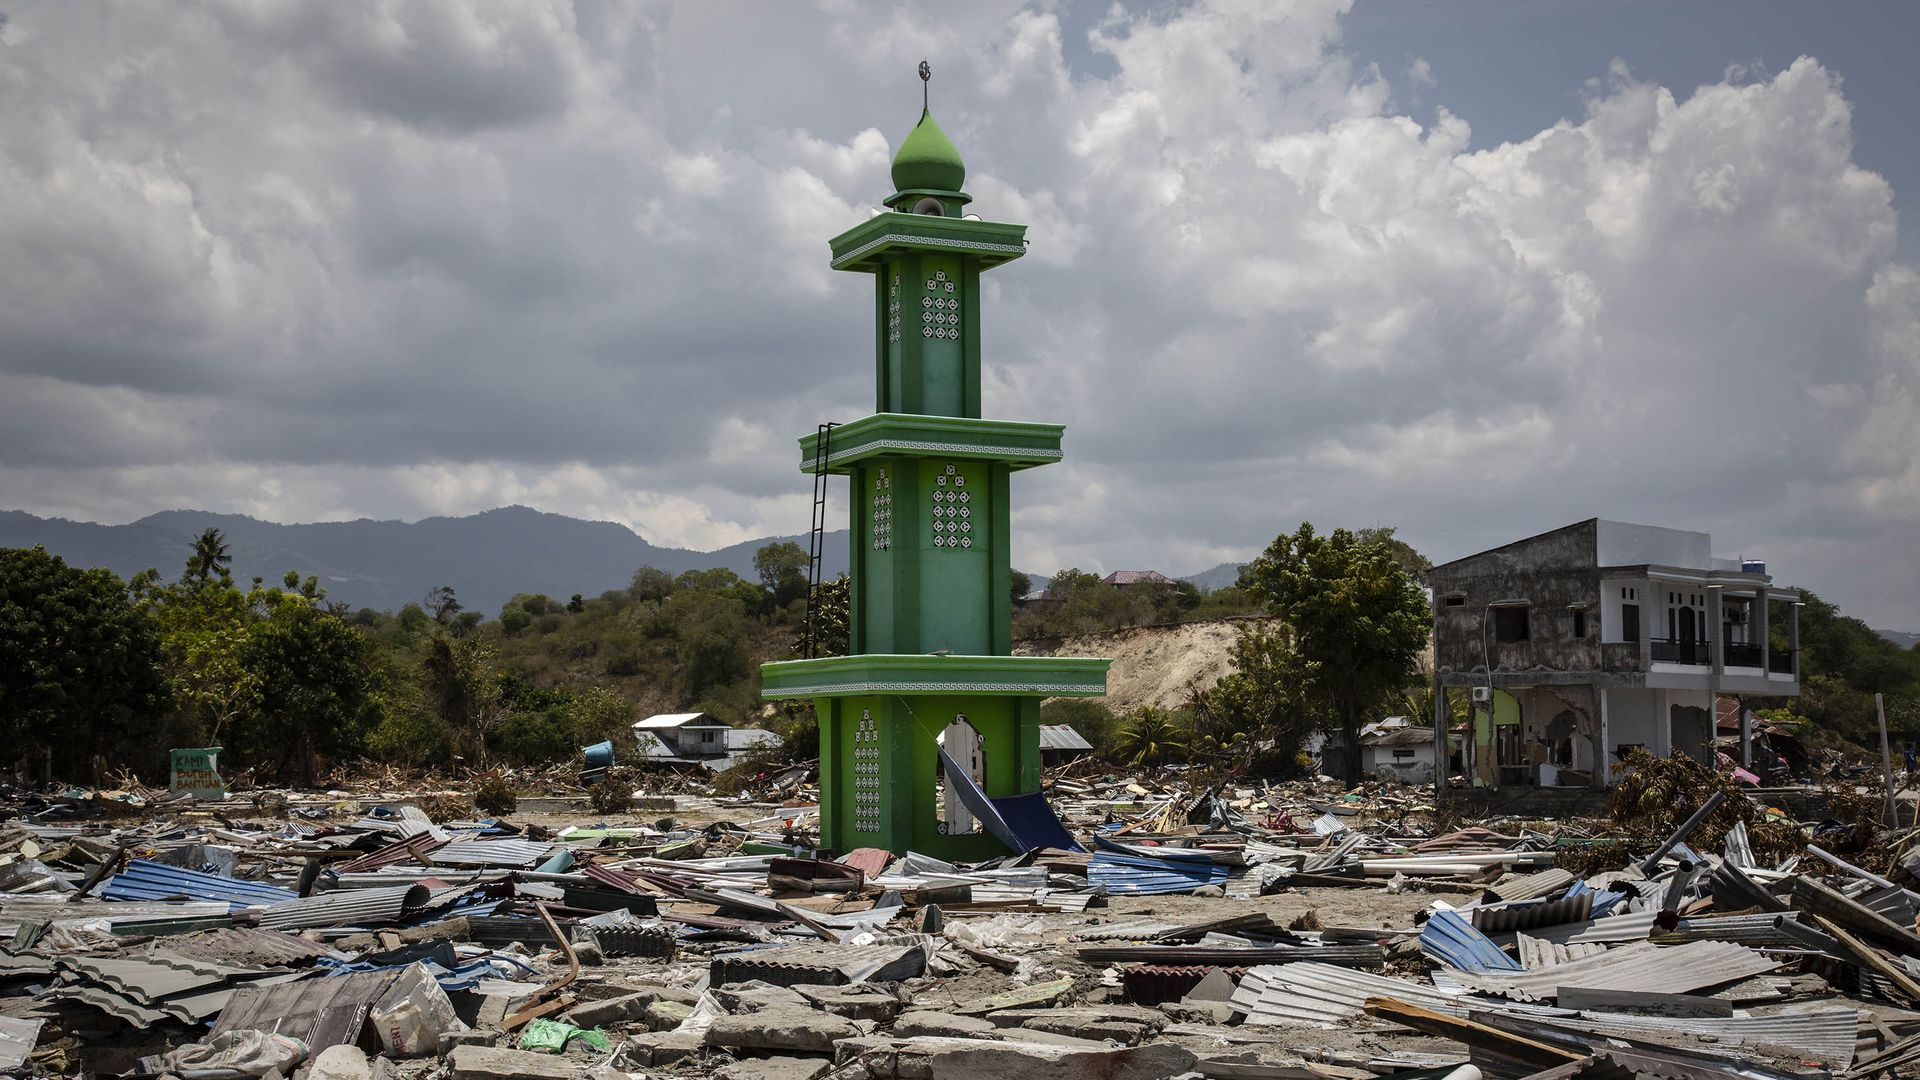 A mosque in the rubble in Indonesia